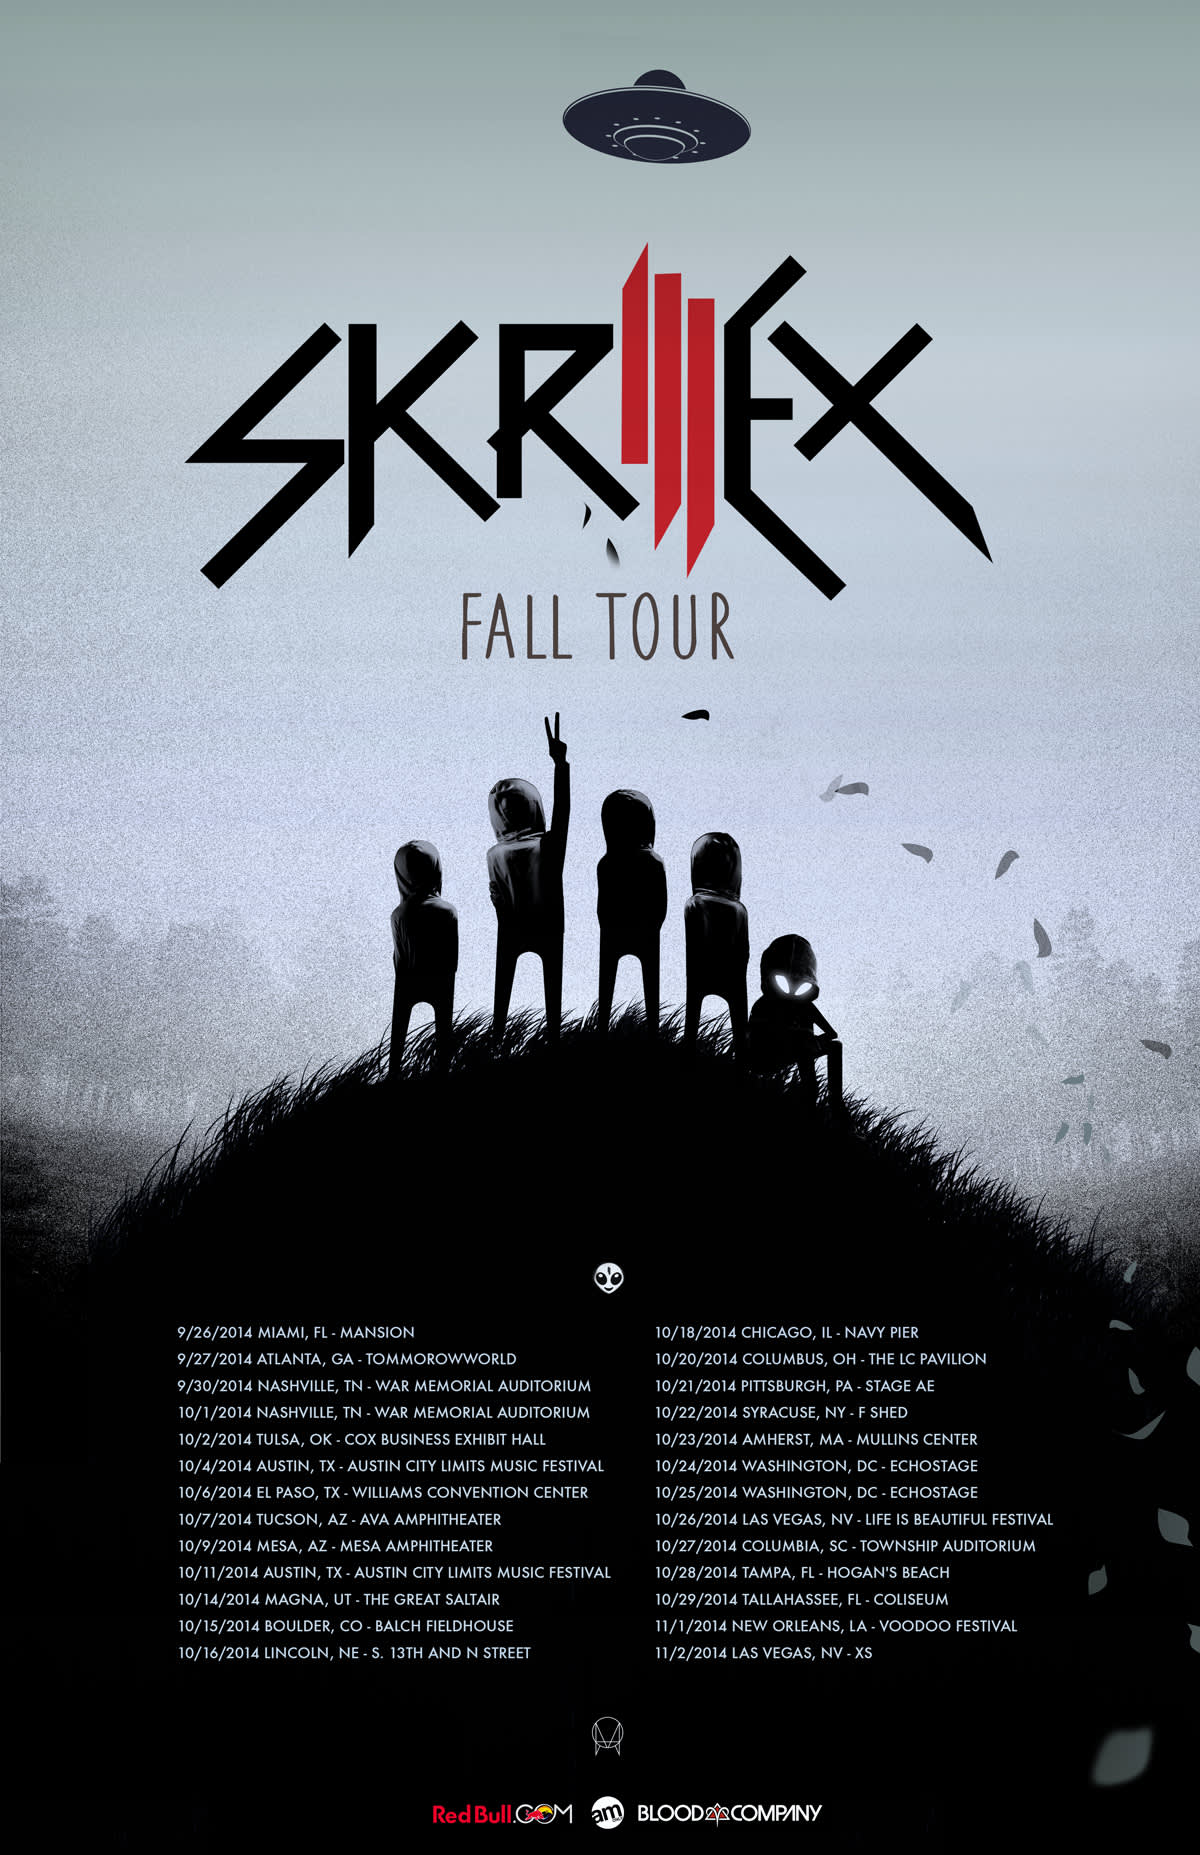 Skrillex tour dates